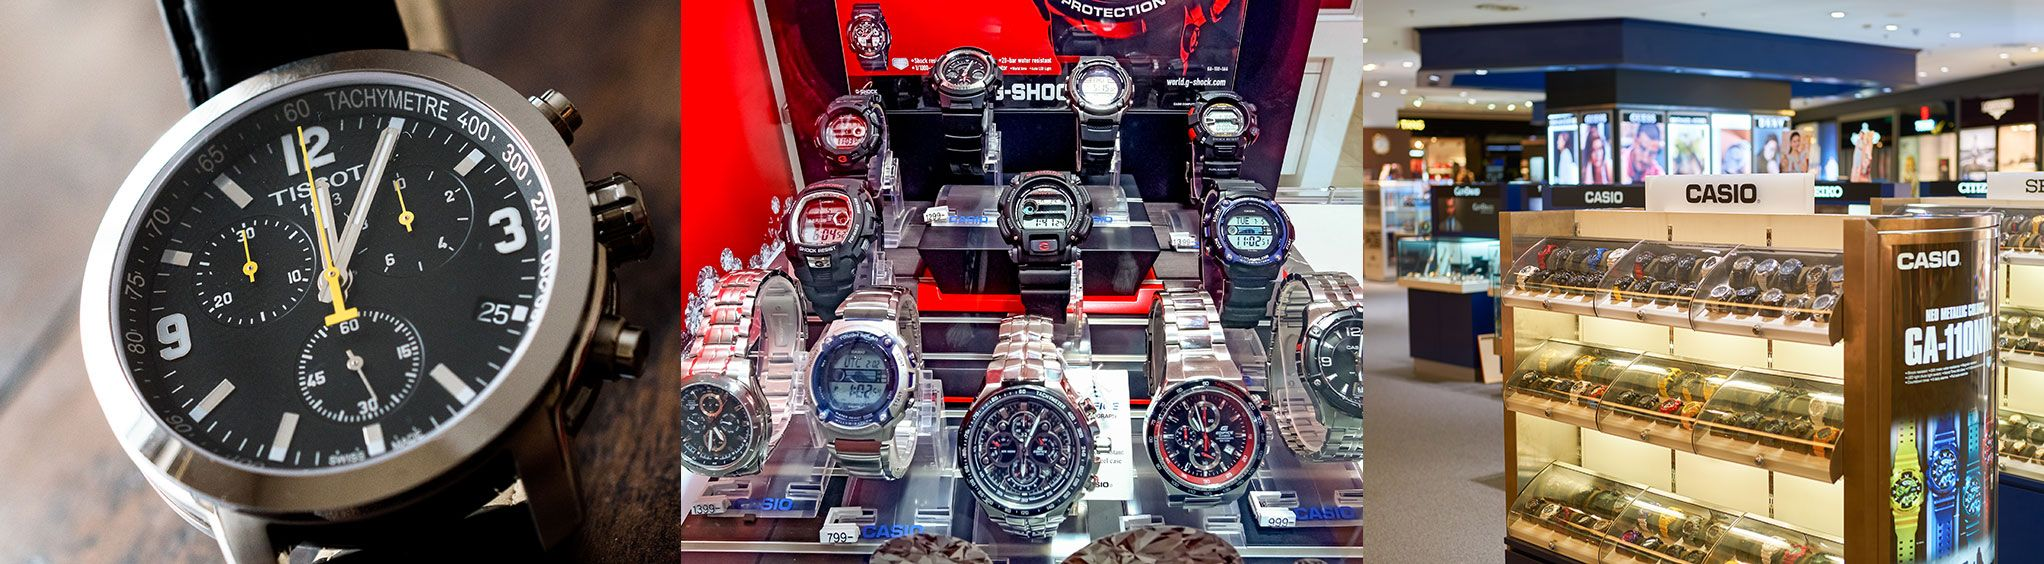 Casio Factory Outlet